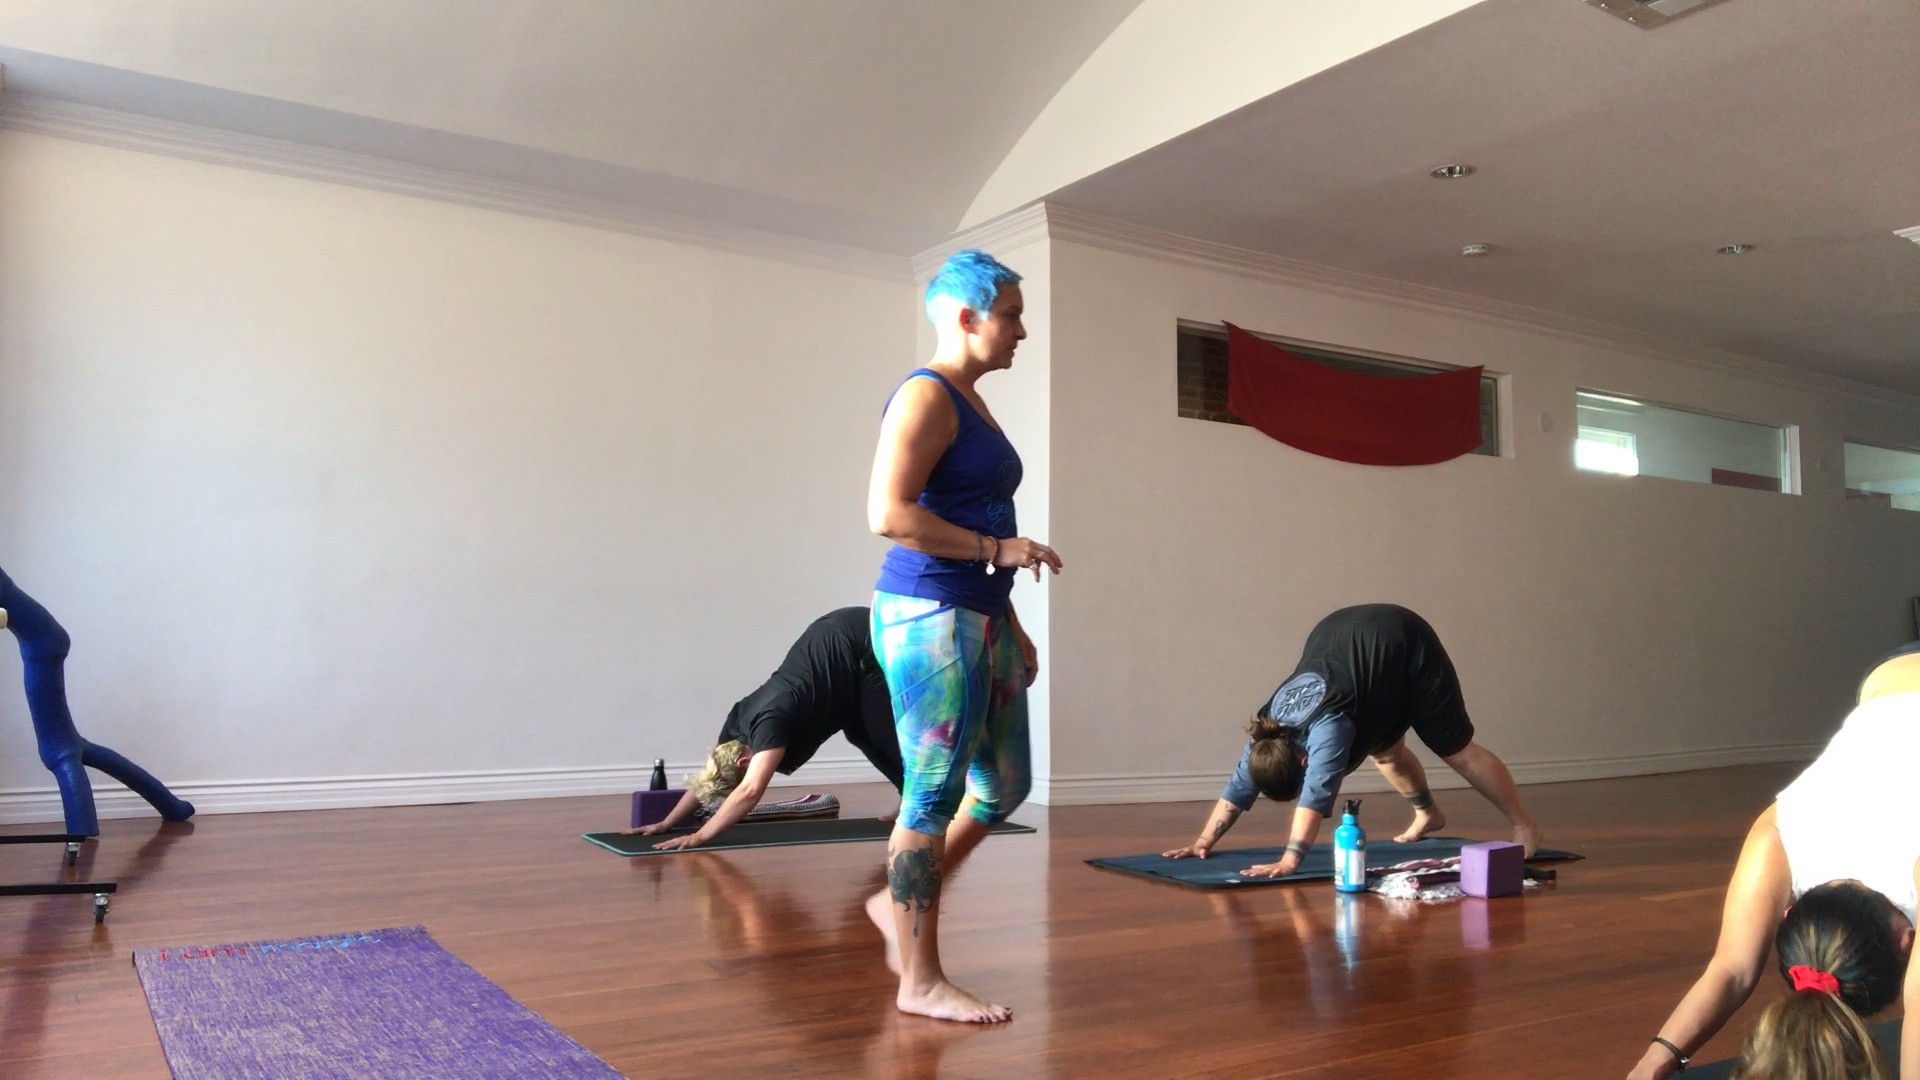 Me teaching during my Riding the Waves of Shakti workshop at Olive Yoga Long Beach on July 14, 2017.